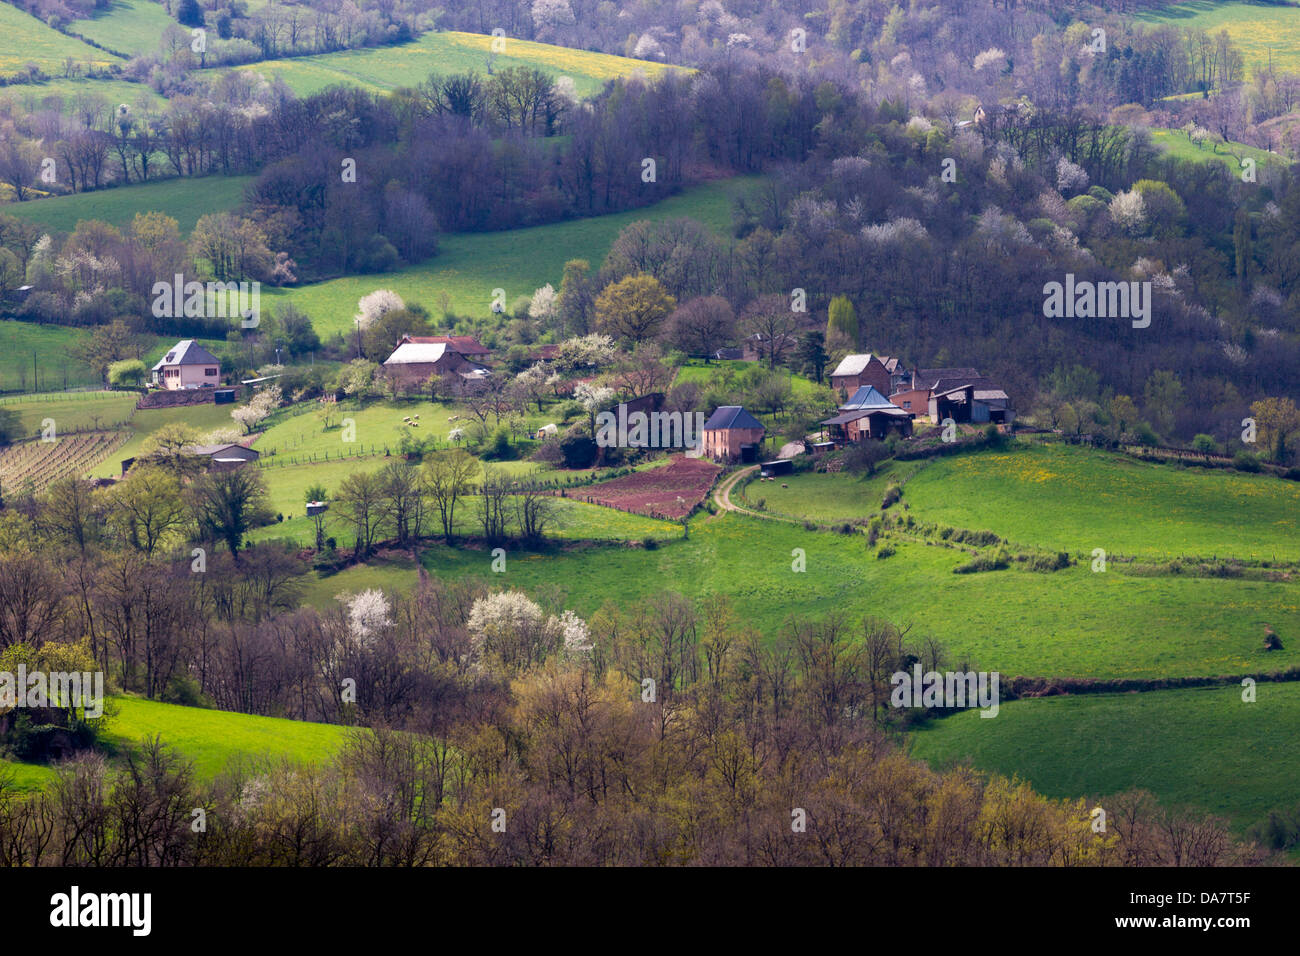 Bucolic landscape with hilly pastures and farmhouses in Midi-Pyrenees region of France - Stock Image